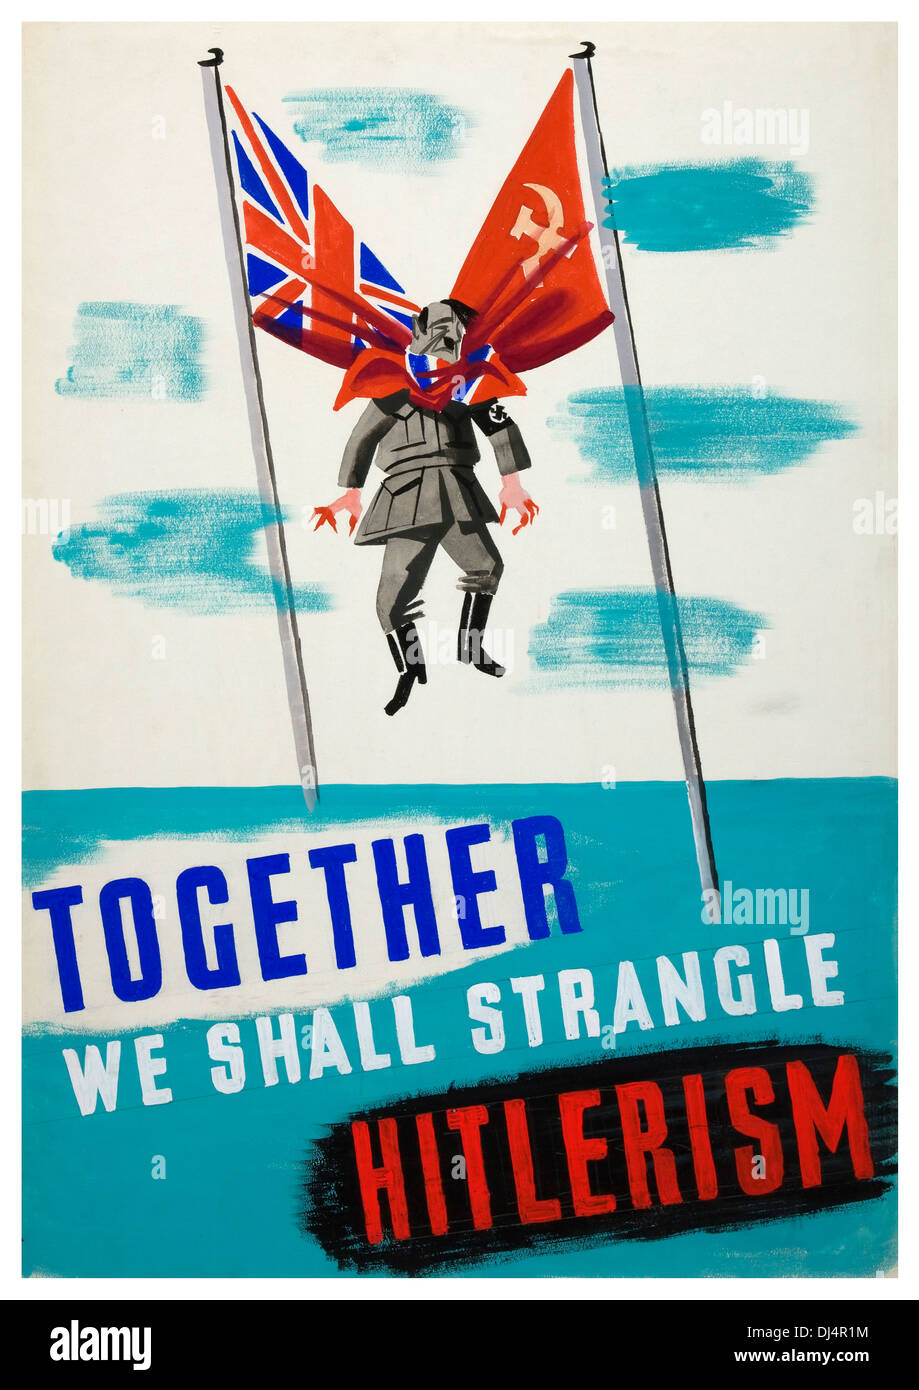 1940's WW2 humerous propaganda poster featuring Hitler being strangled by British and Russian flags - Stock Image